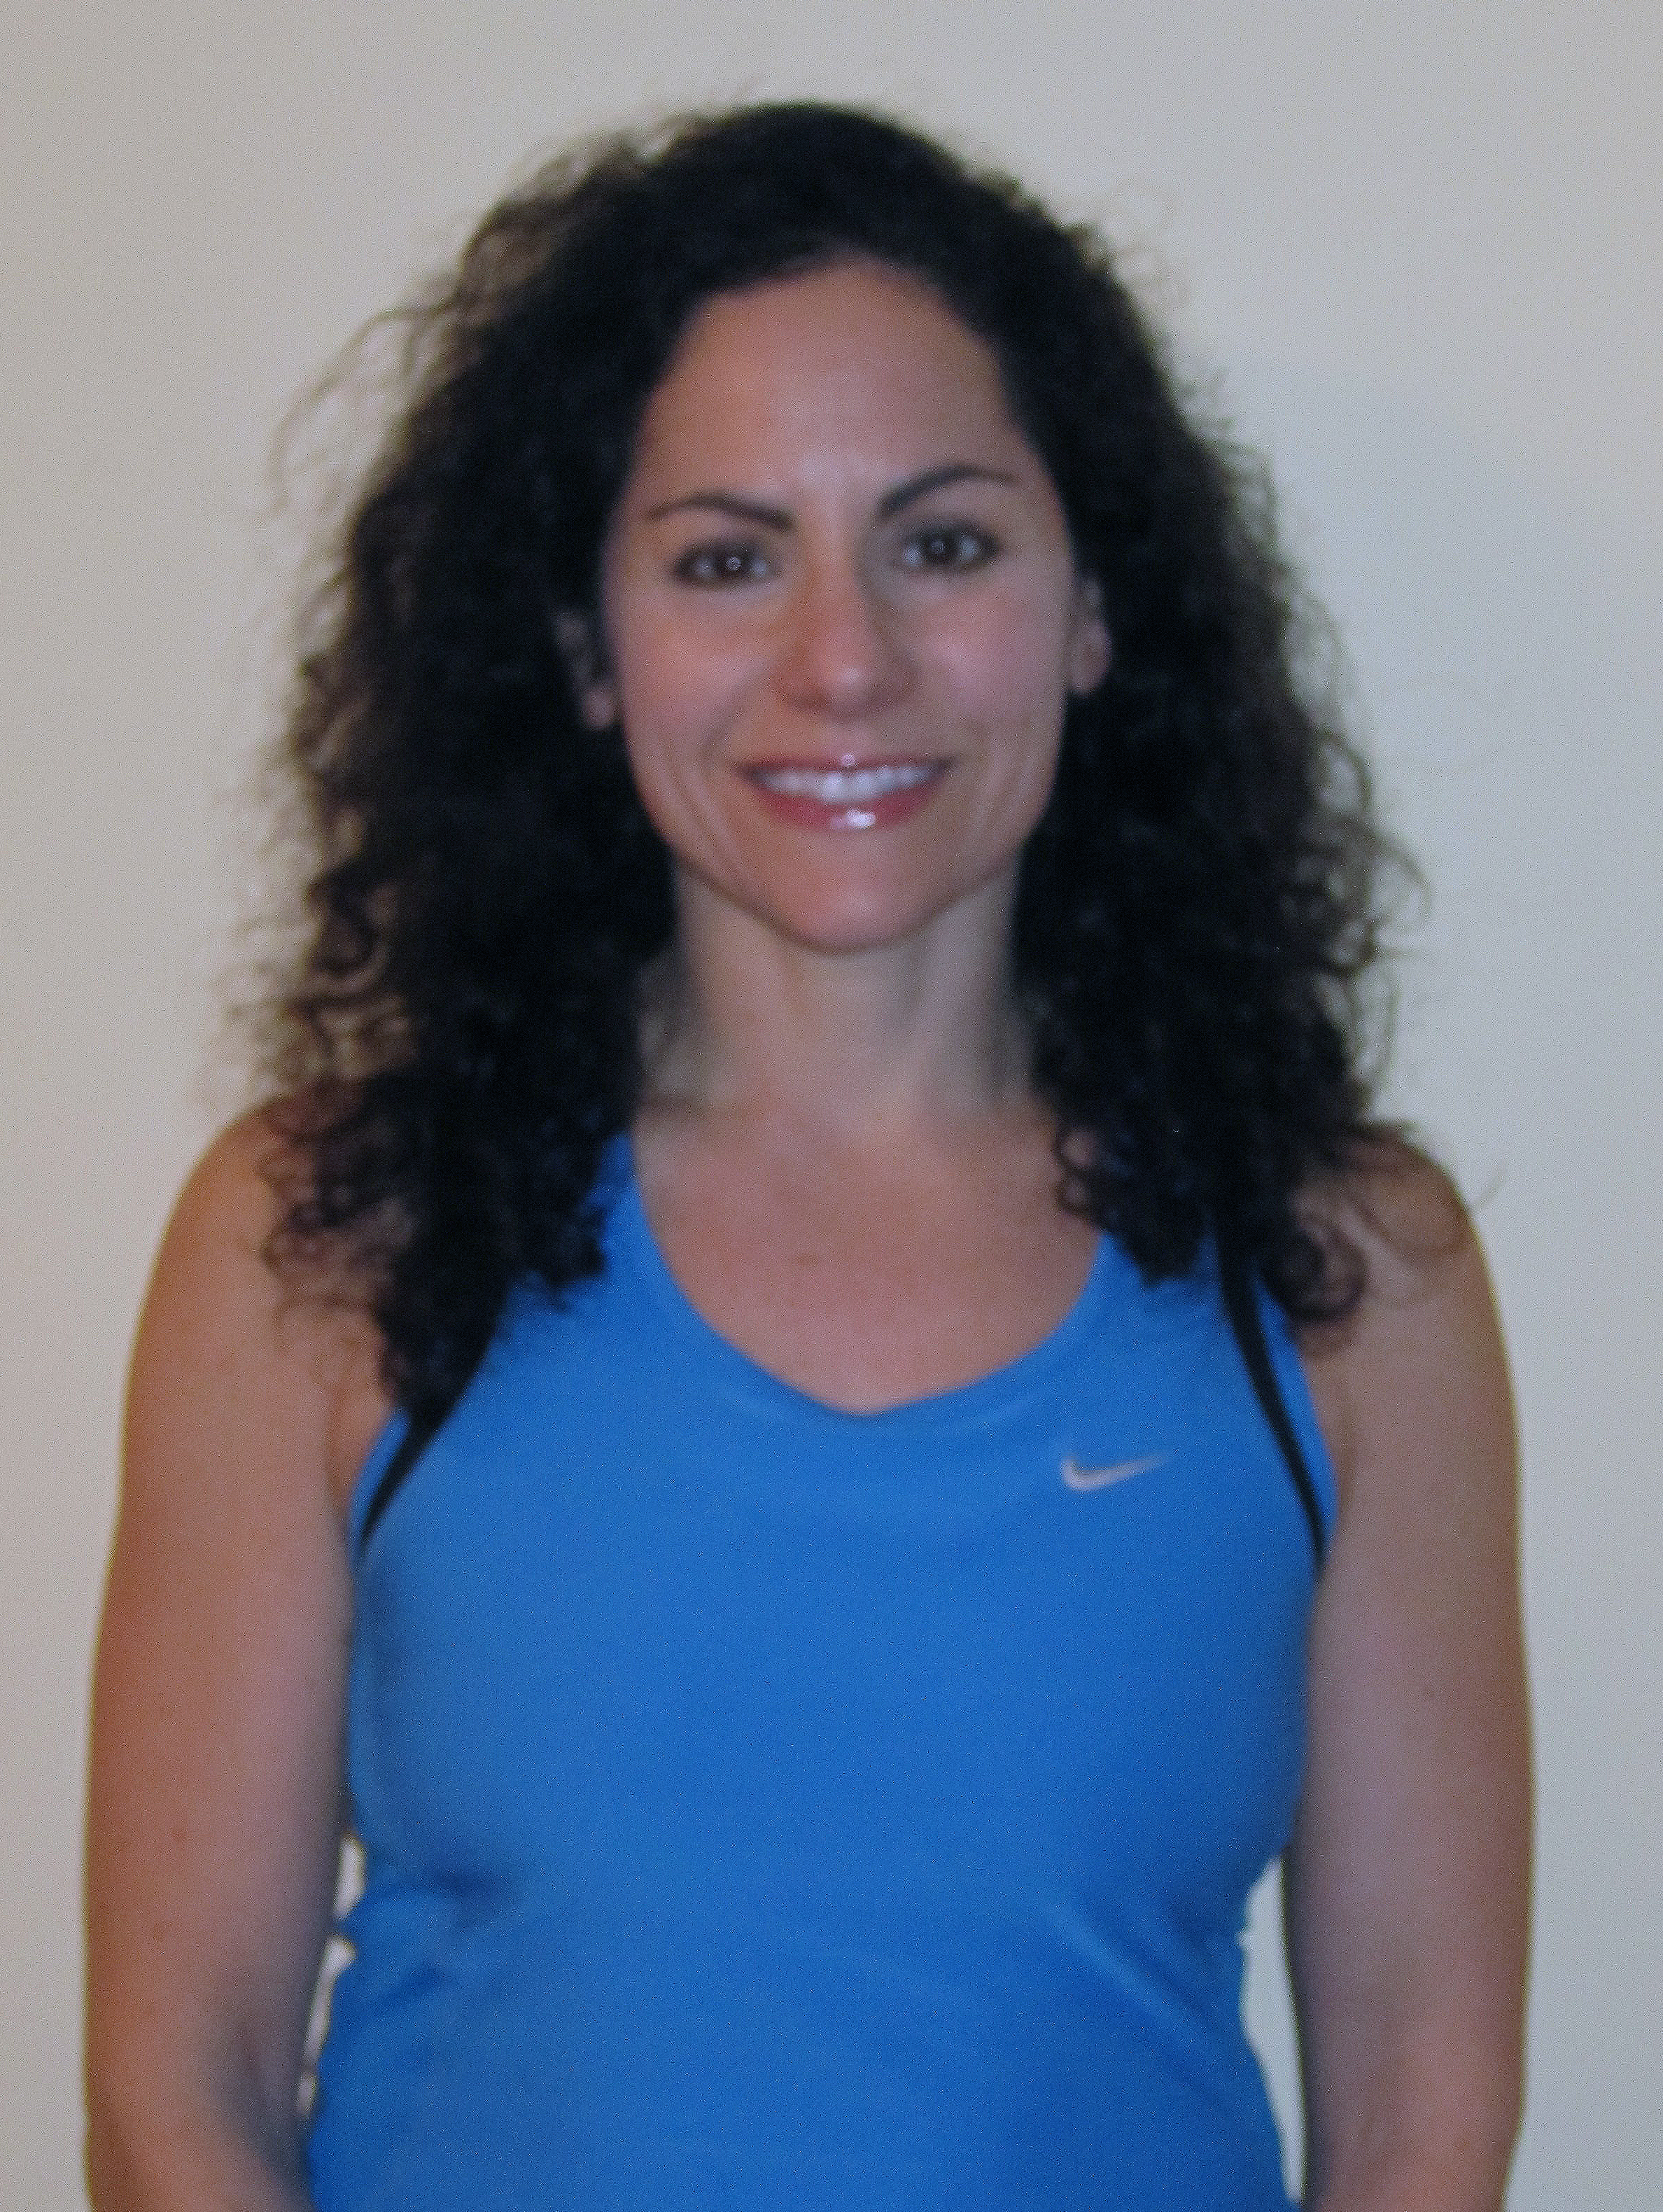 Shari Kussner Group Exercise Instructor